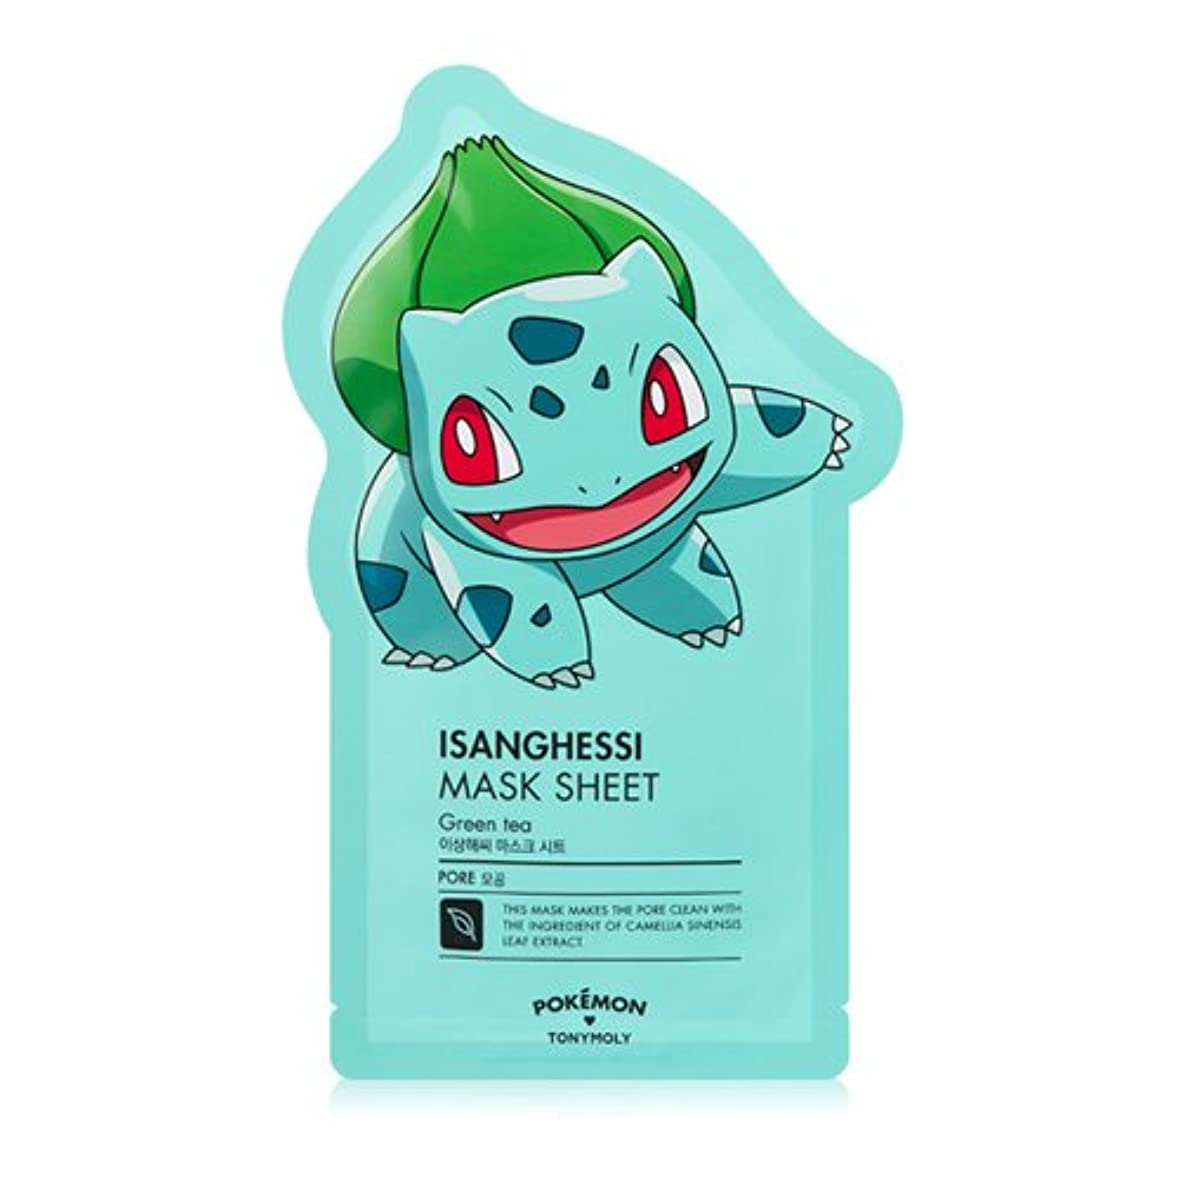 吸収する寄稿者例示するTONYMOLY x Pokemon Bulbasaur/Isanghessi Mask Sheet (並行輸入品)